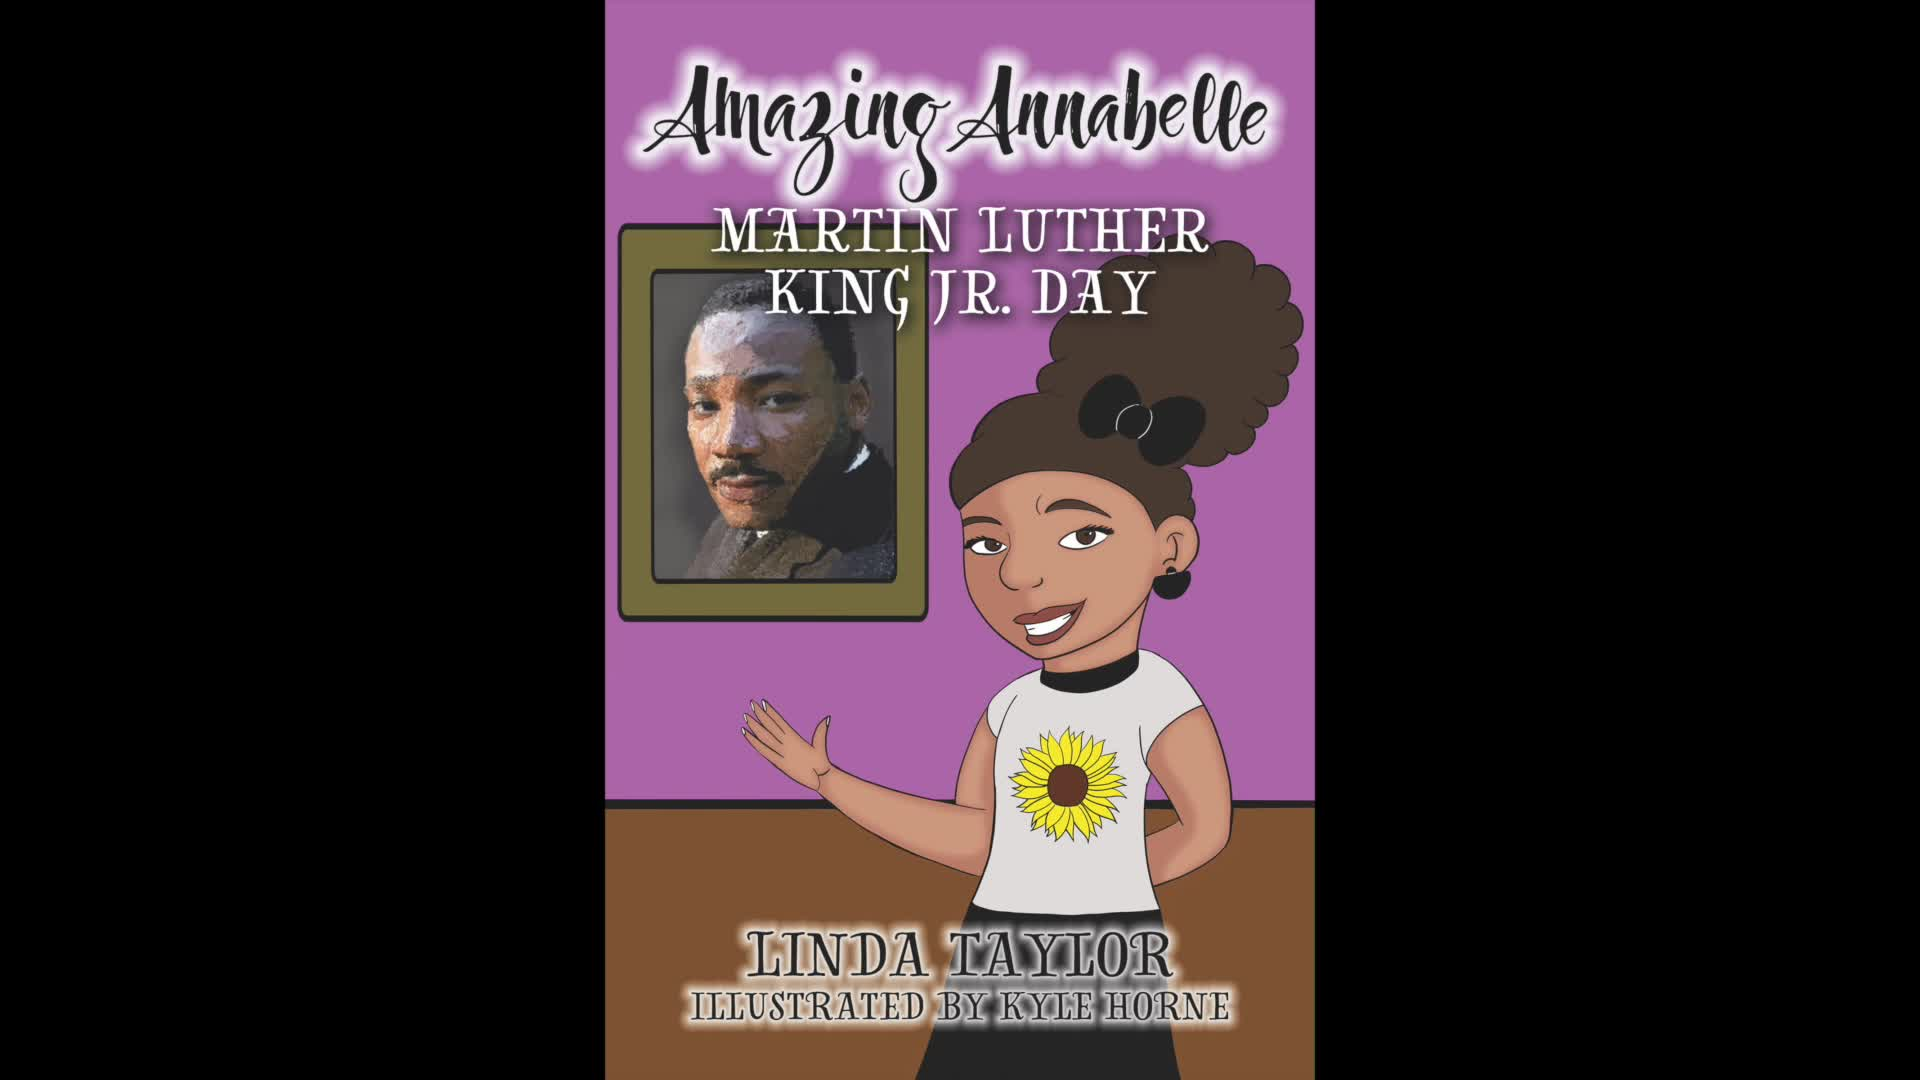 Amazing Annabelle Martin Luther King Jr Day Chapter 6